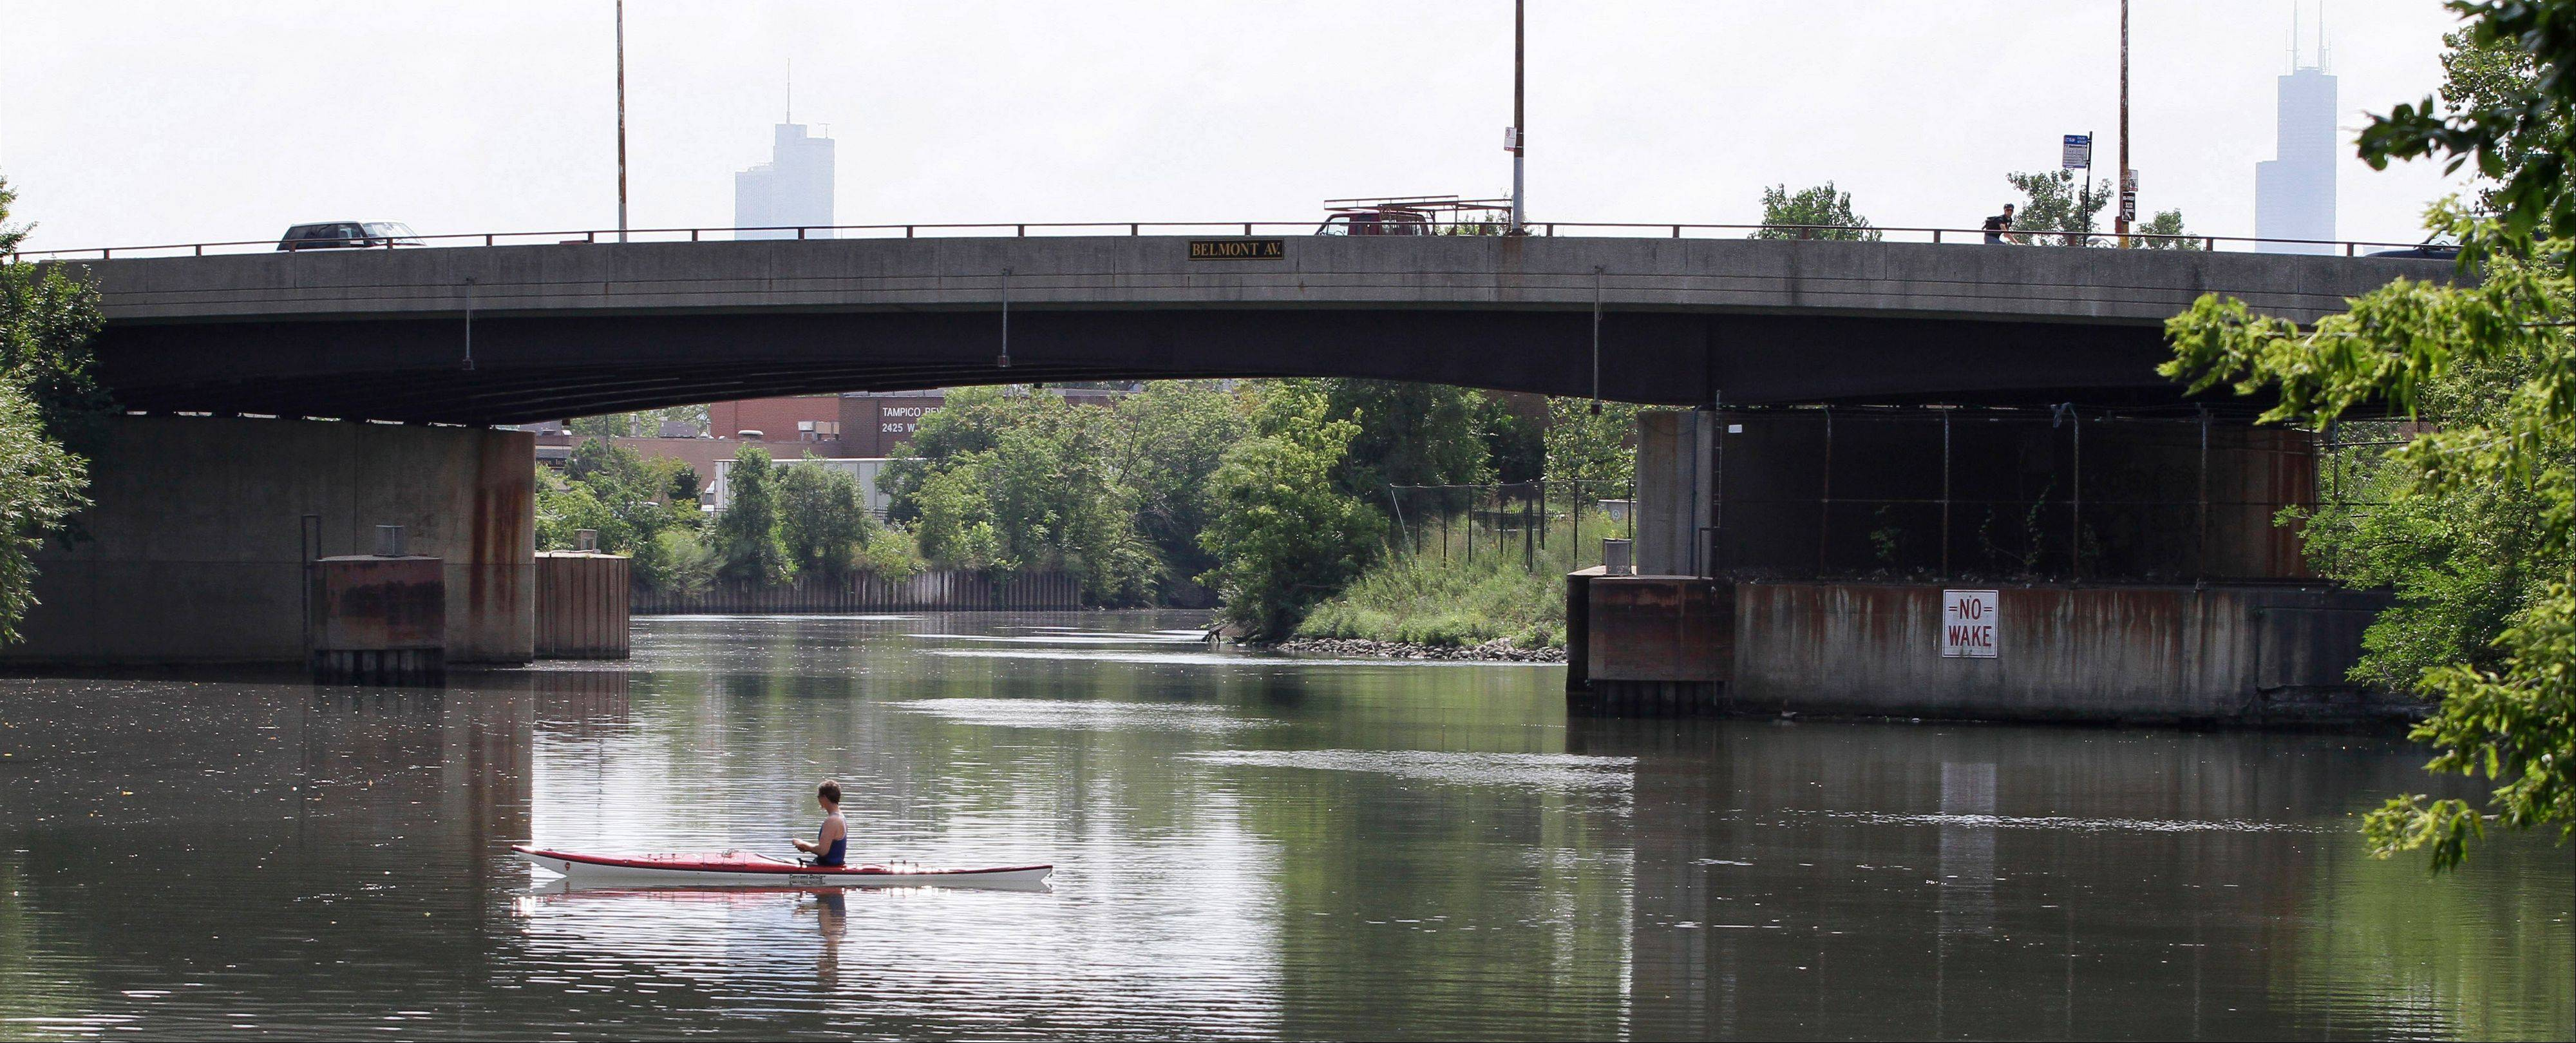 In this photo taken Aug. 23, 2010, a kayaker paddles along the Chicago River in Chicago. A new commission will ensure minorities and the poor aren�t disproportionately affected by environmental pollution.